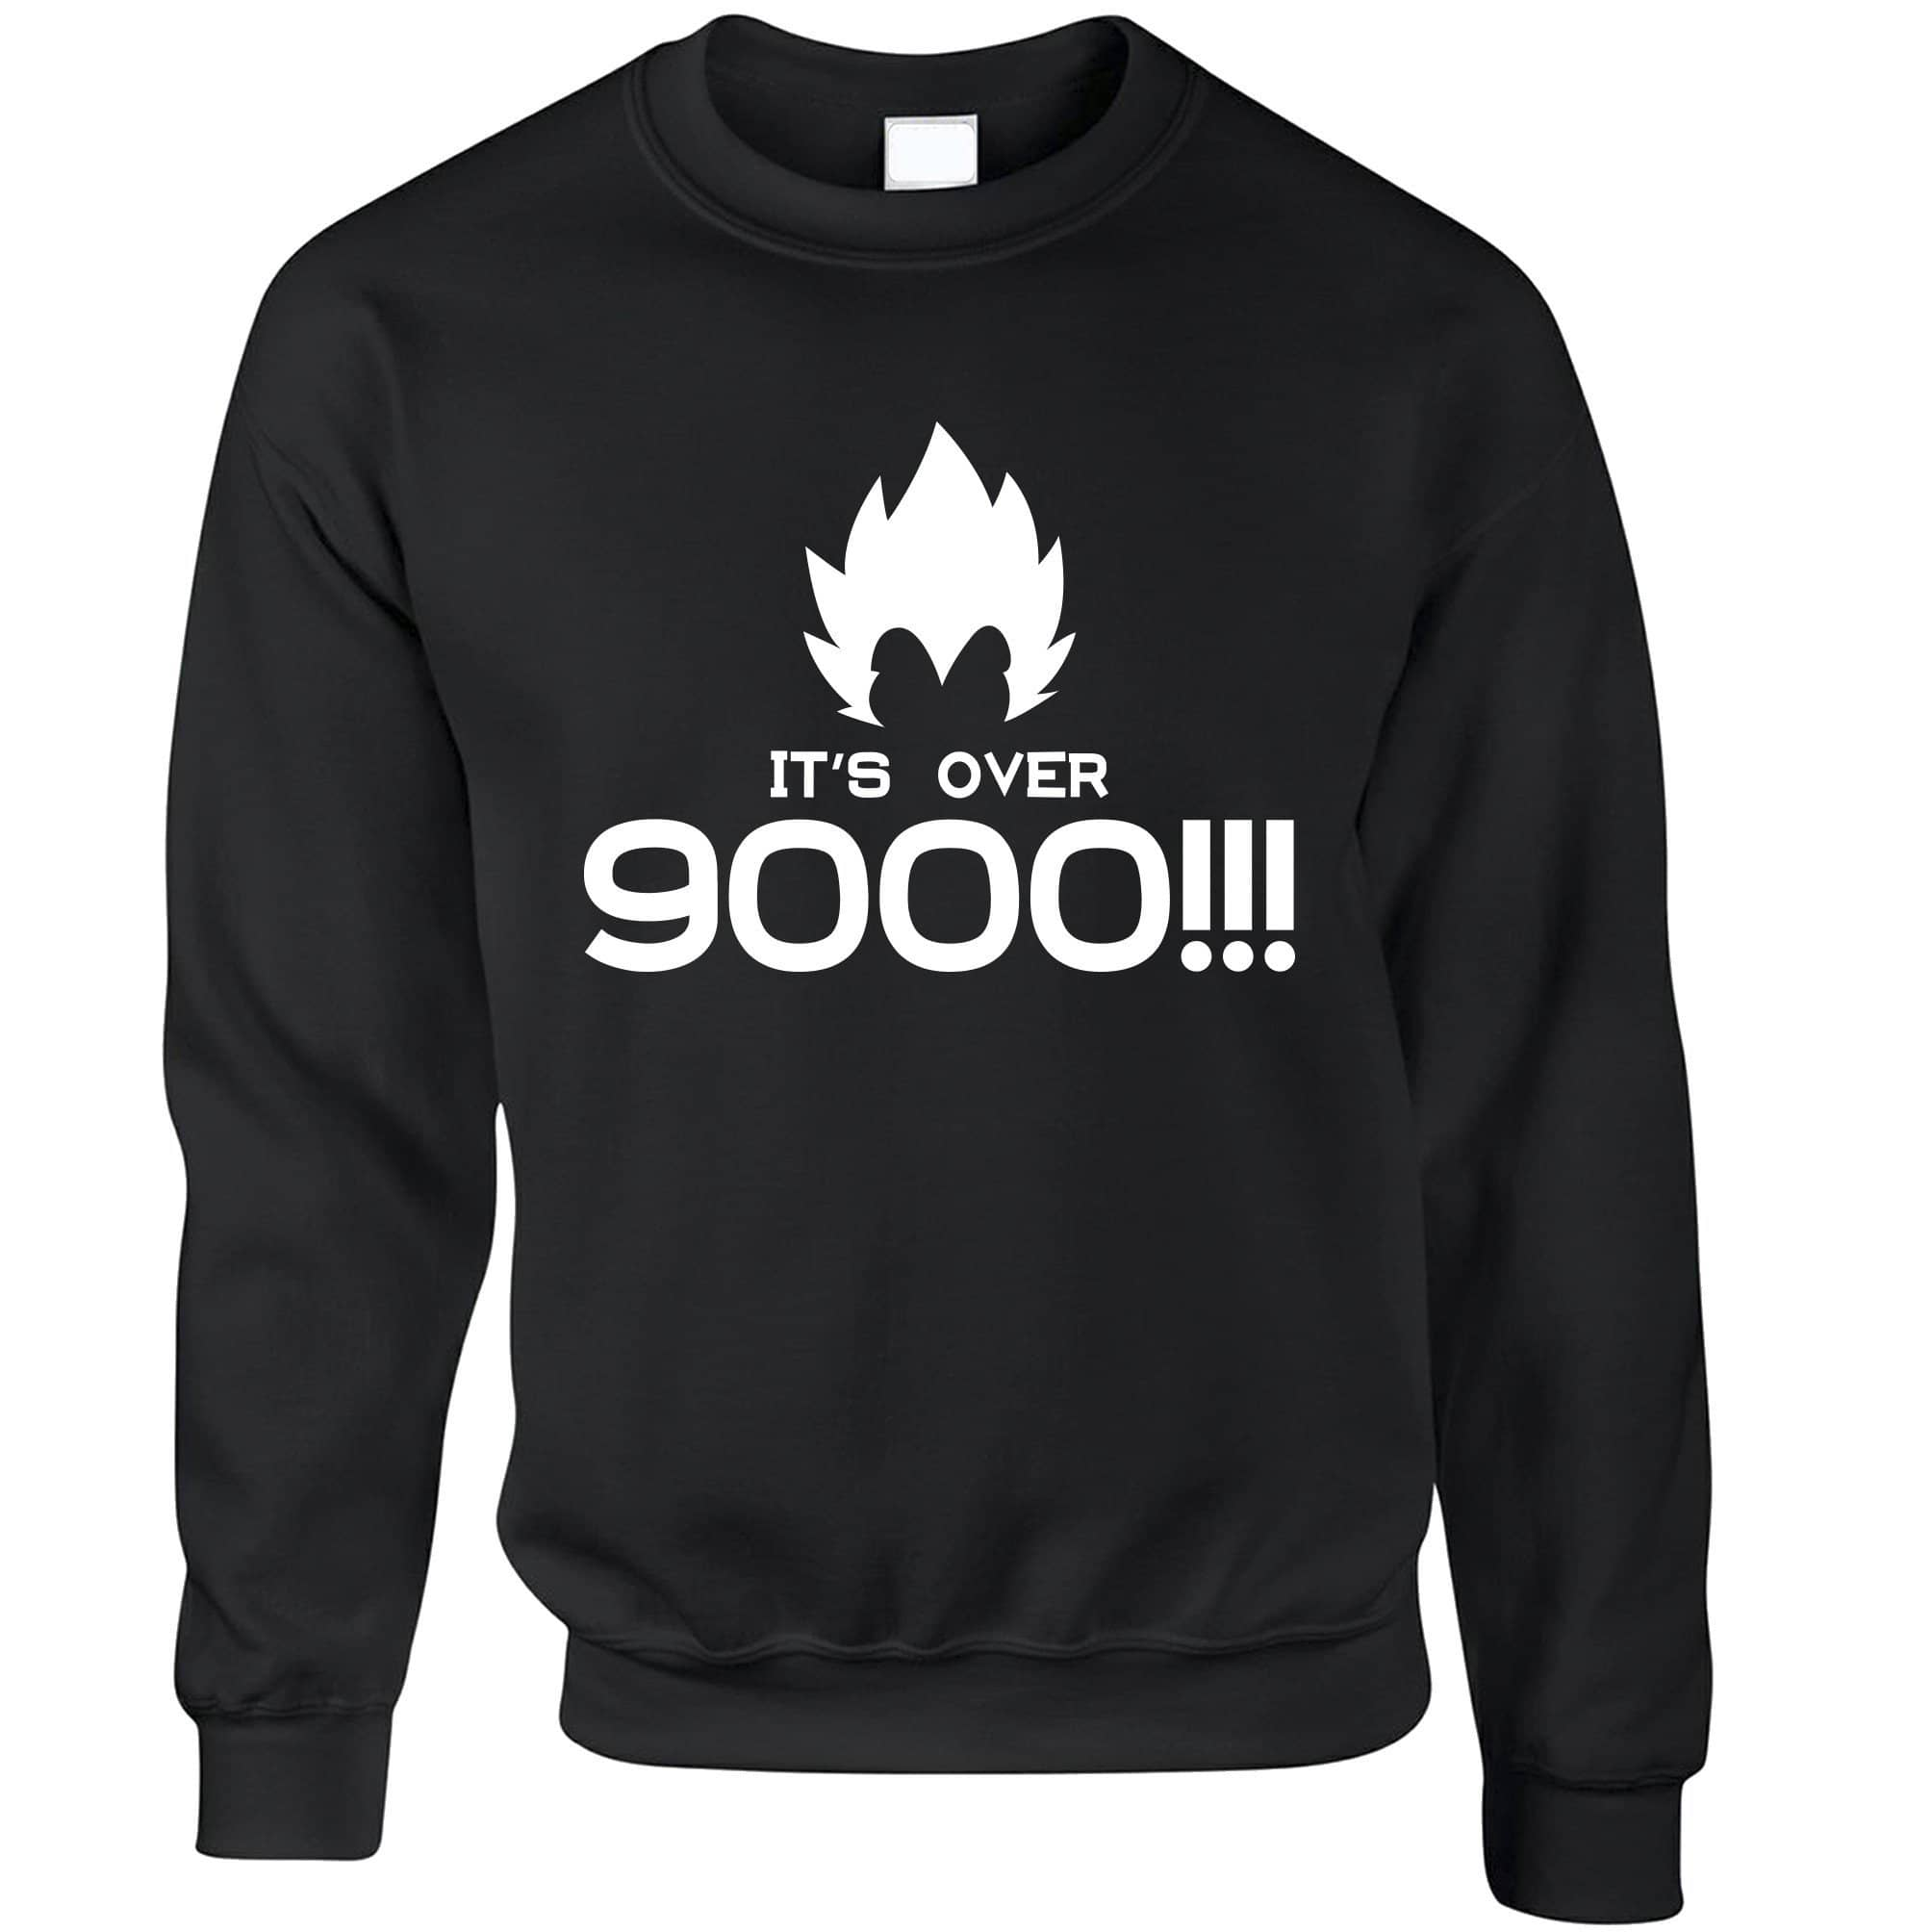 Novelty Anime Parody Jumper It's Over 9000!! Slogan Sweatshirt Sweater